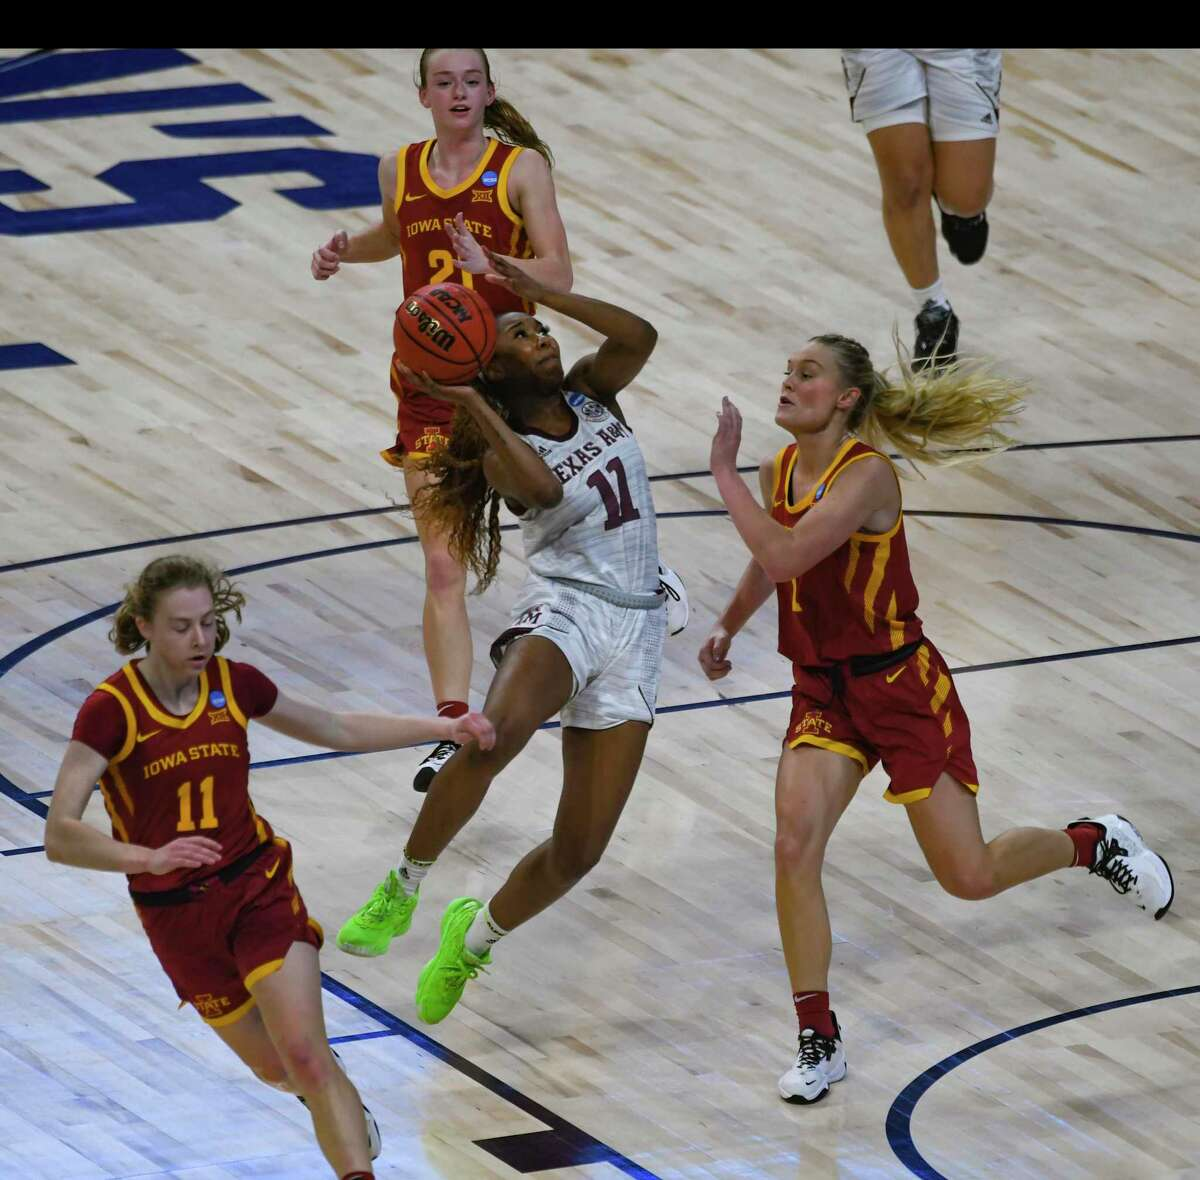 Kayla Wells of Texas A&M shoots against Iowa State during the team's 84-82 overtime victory in the NCAA Women's Basketball Championship tournament to advance to the Sweet 16 in the Alamodome on Wednesday, March 24, 2021.